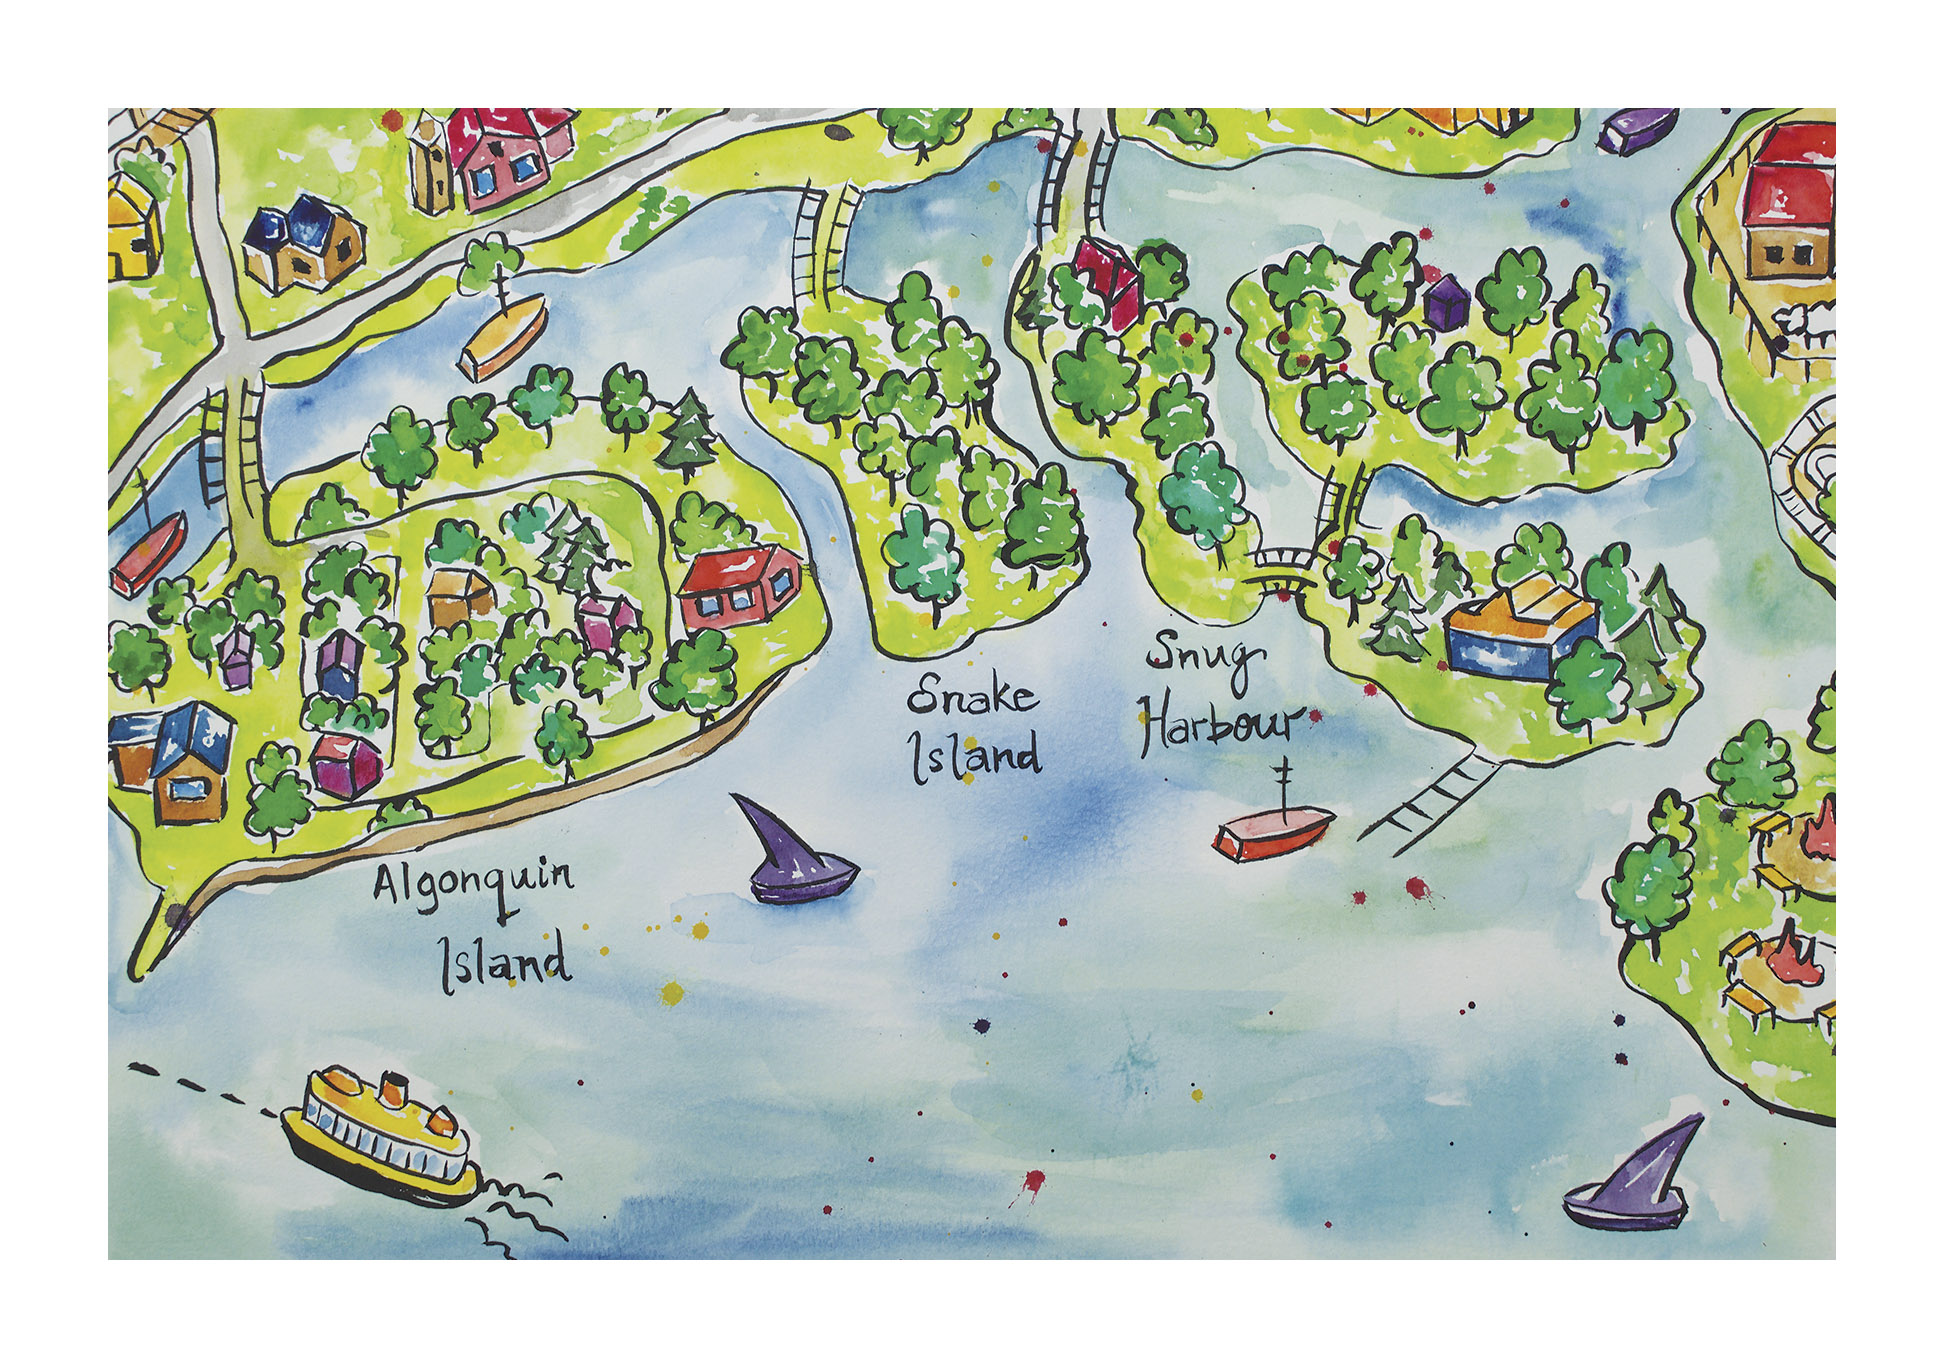 Toronto Island Map - Snug Harbour